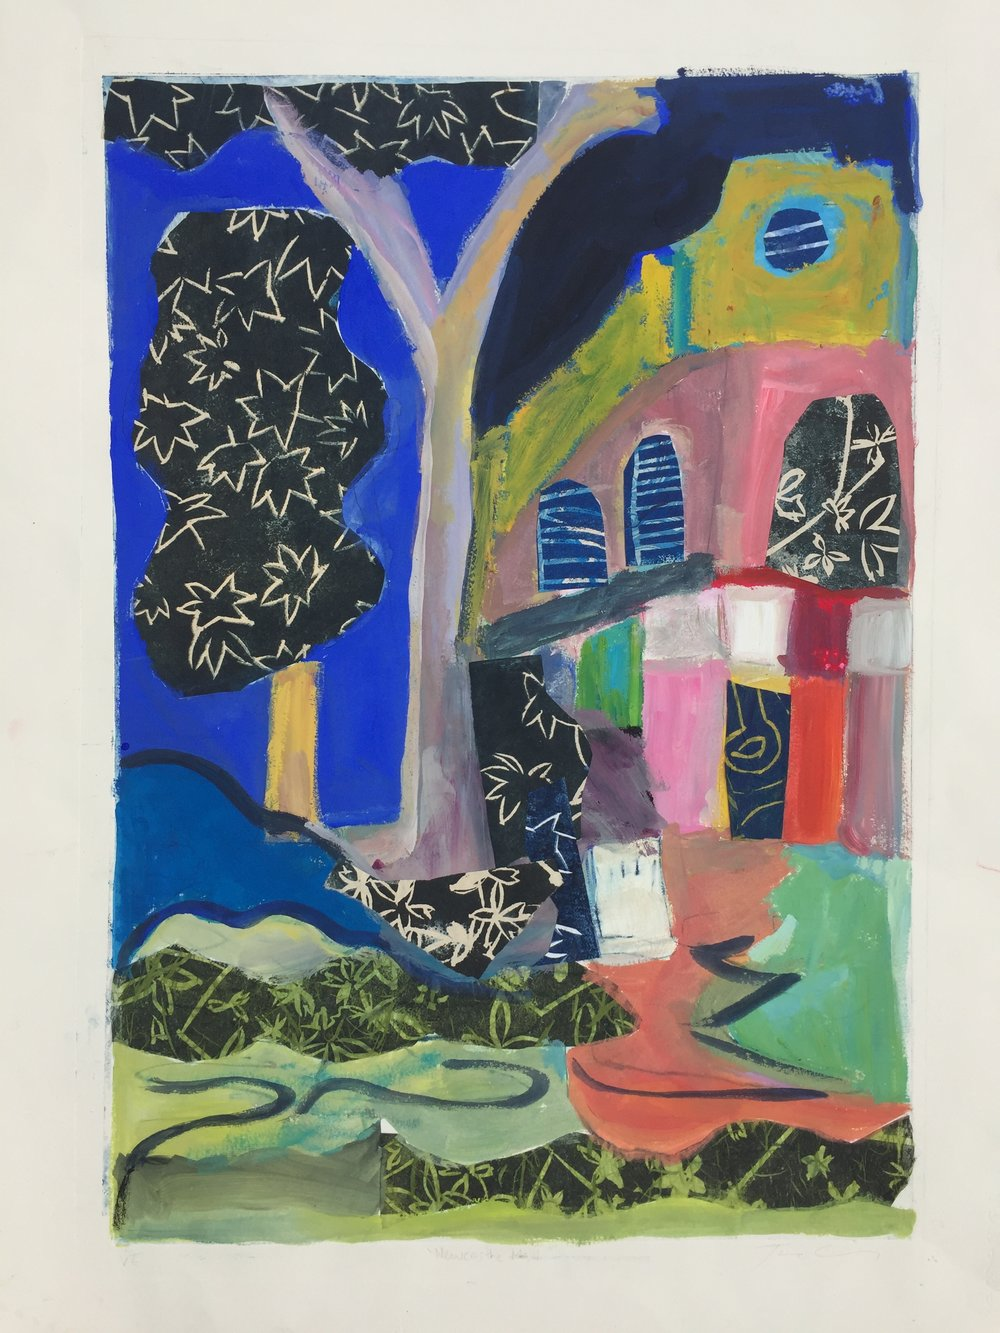 Jane Collins_Newcastle Mall_2018_printmaking, collage and paint_76 x 56cm_$650.00.JPG